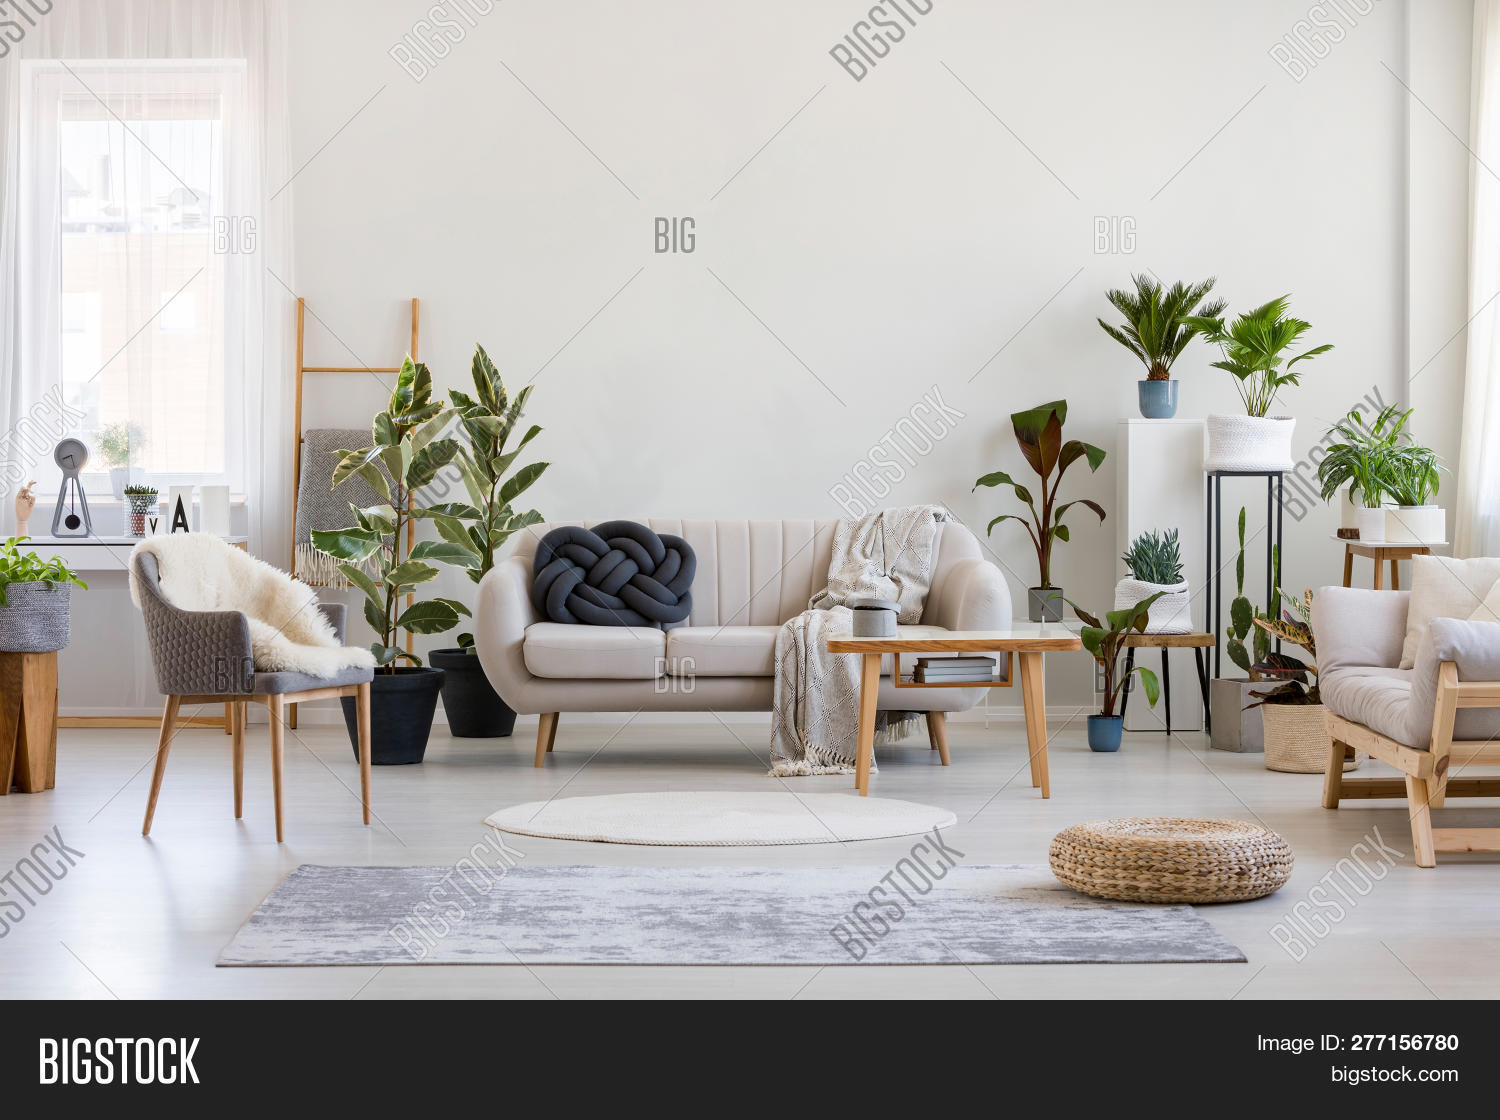 Urban,apartment,bright,chair,coffee,comfortable,condo,contemporary,copy,couch,cozy,design,elegant,empty,estate,fashionable,flat,floor,flower,furniture,green,grey,home,house,interior,jungle,knot,ladder,leaf,living,luxury,modern,pillow,plant,pot,relax,room,rug,scandinavian,settee,simple,sofa,space,style,stylish,table,trendy,wall,white,wooden